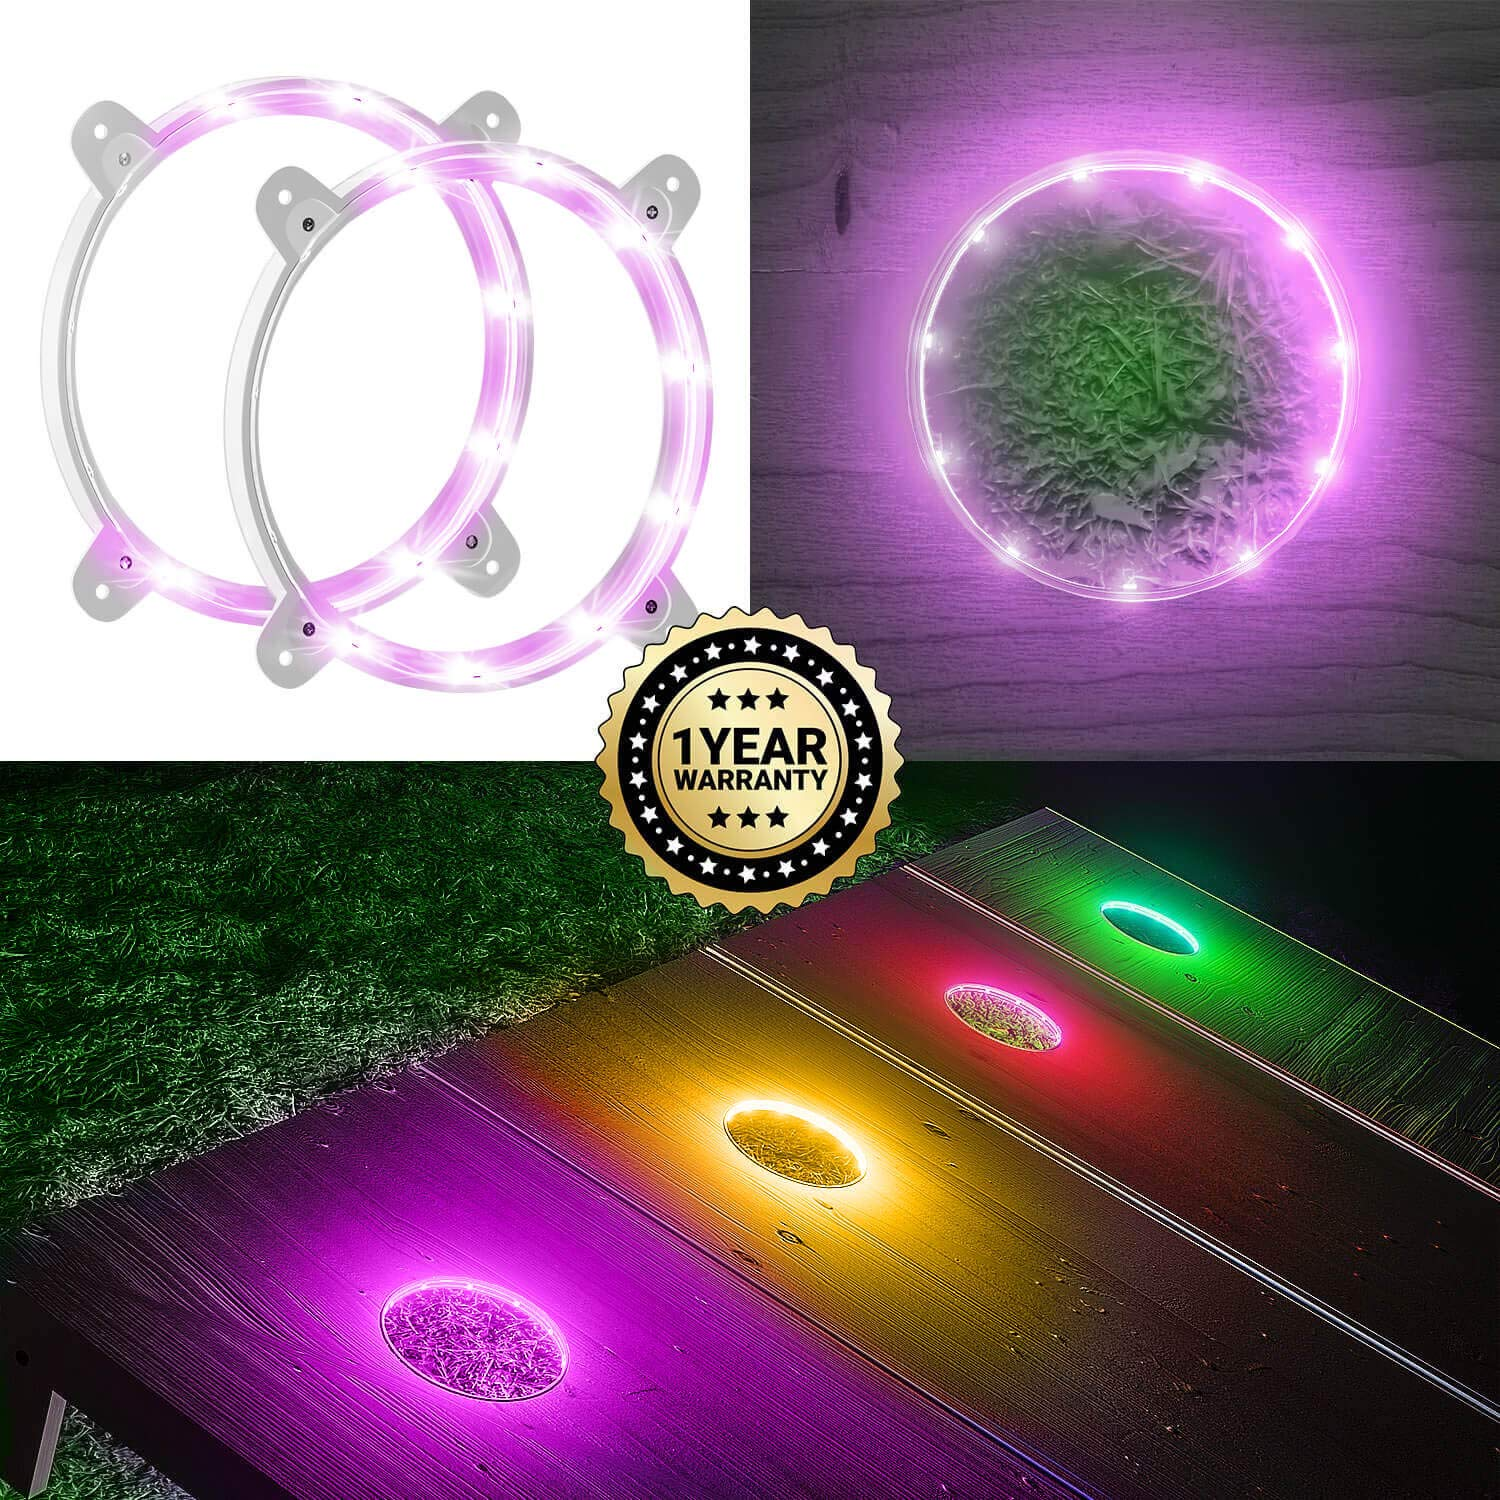 IMMOBIUS Cornhole LED Board Lights so You Can Play at Night! (Set of 2) -Choose from 4 Colors- 1 Year Replacement Warranty, Sturdy Build, Lasts 100+ Hours on 2 AA Batteries! (Pink)